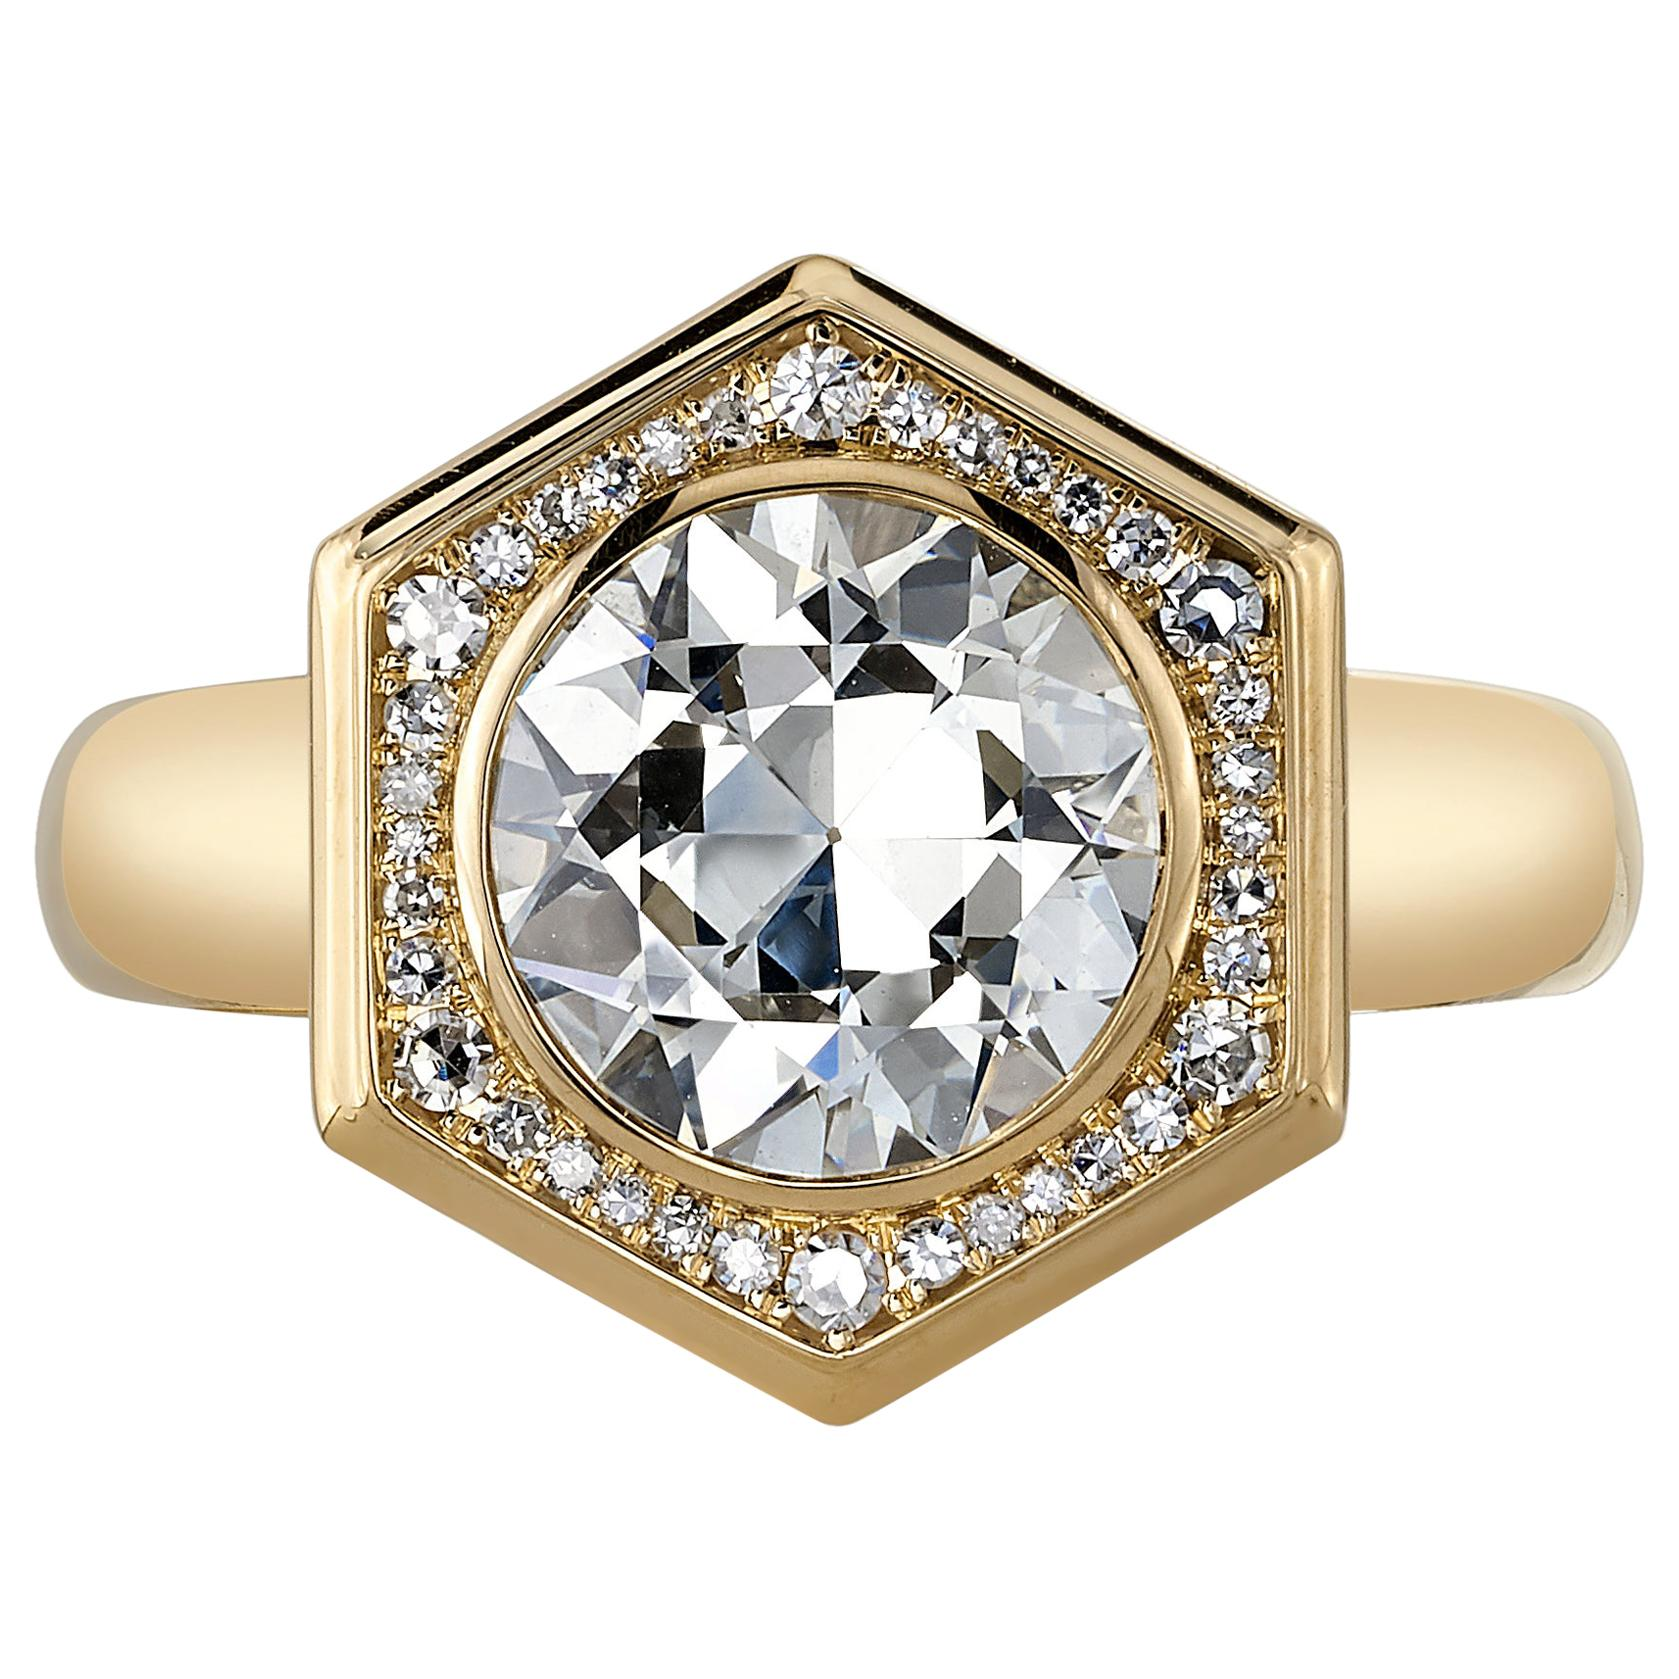 2.08 Carat GIA Certified Old European Cut Diamond Set in an 18 Karat Gold Ring